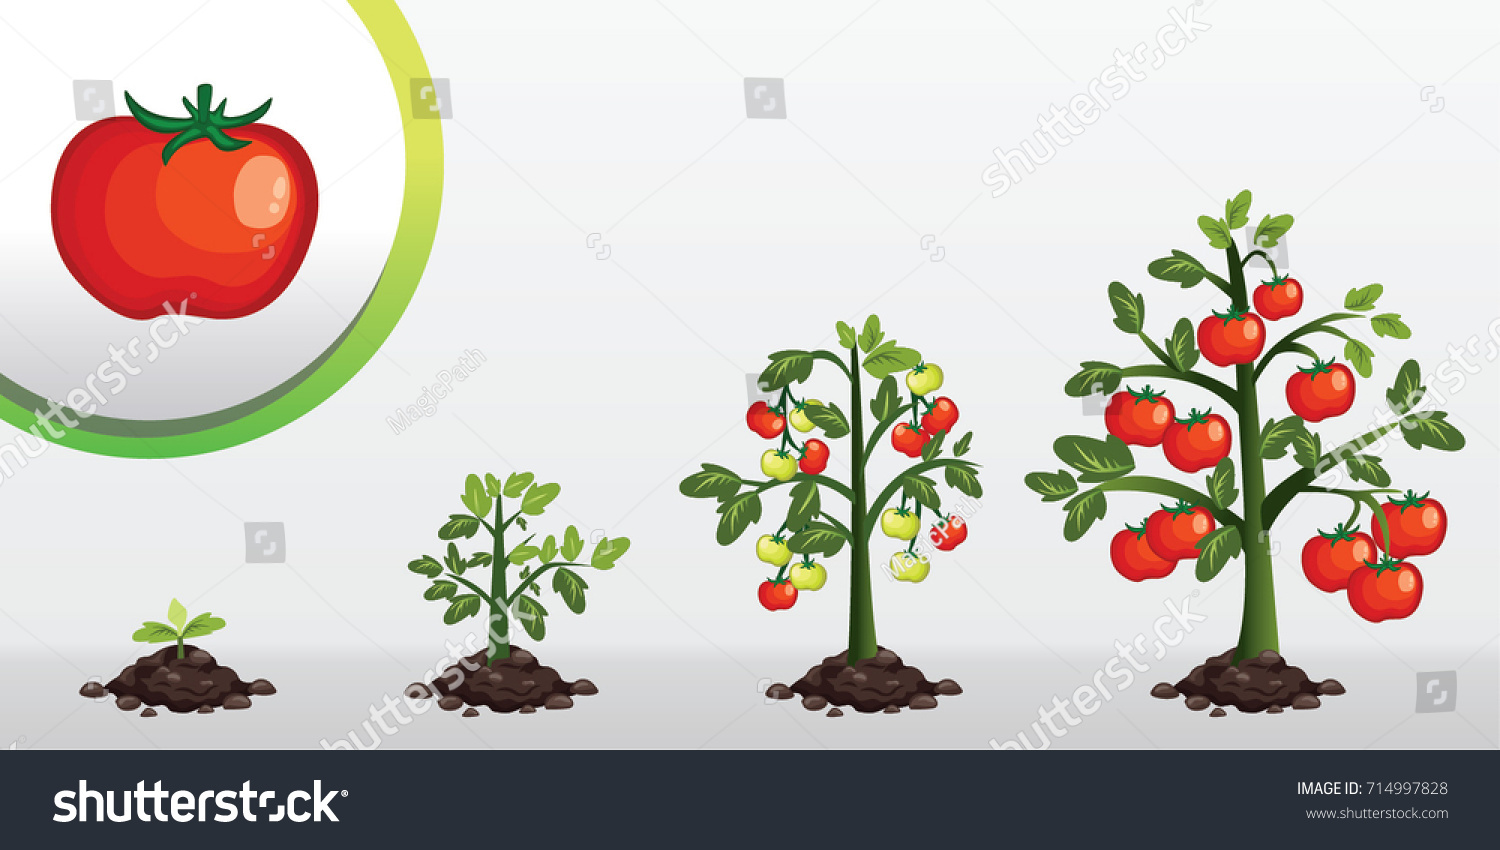 Infographic Tree Planting Seedling Plant Seeds Stock ...